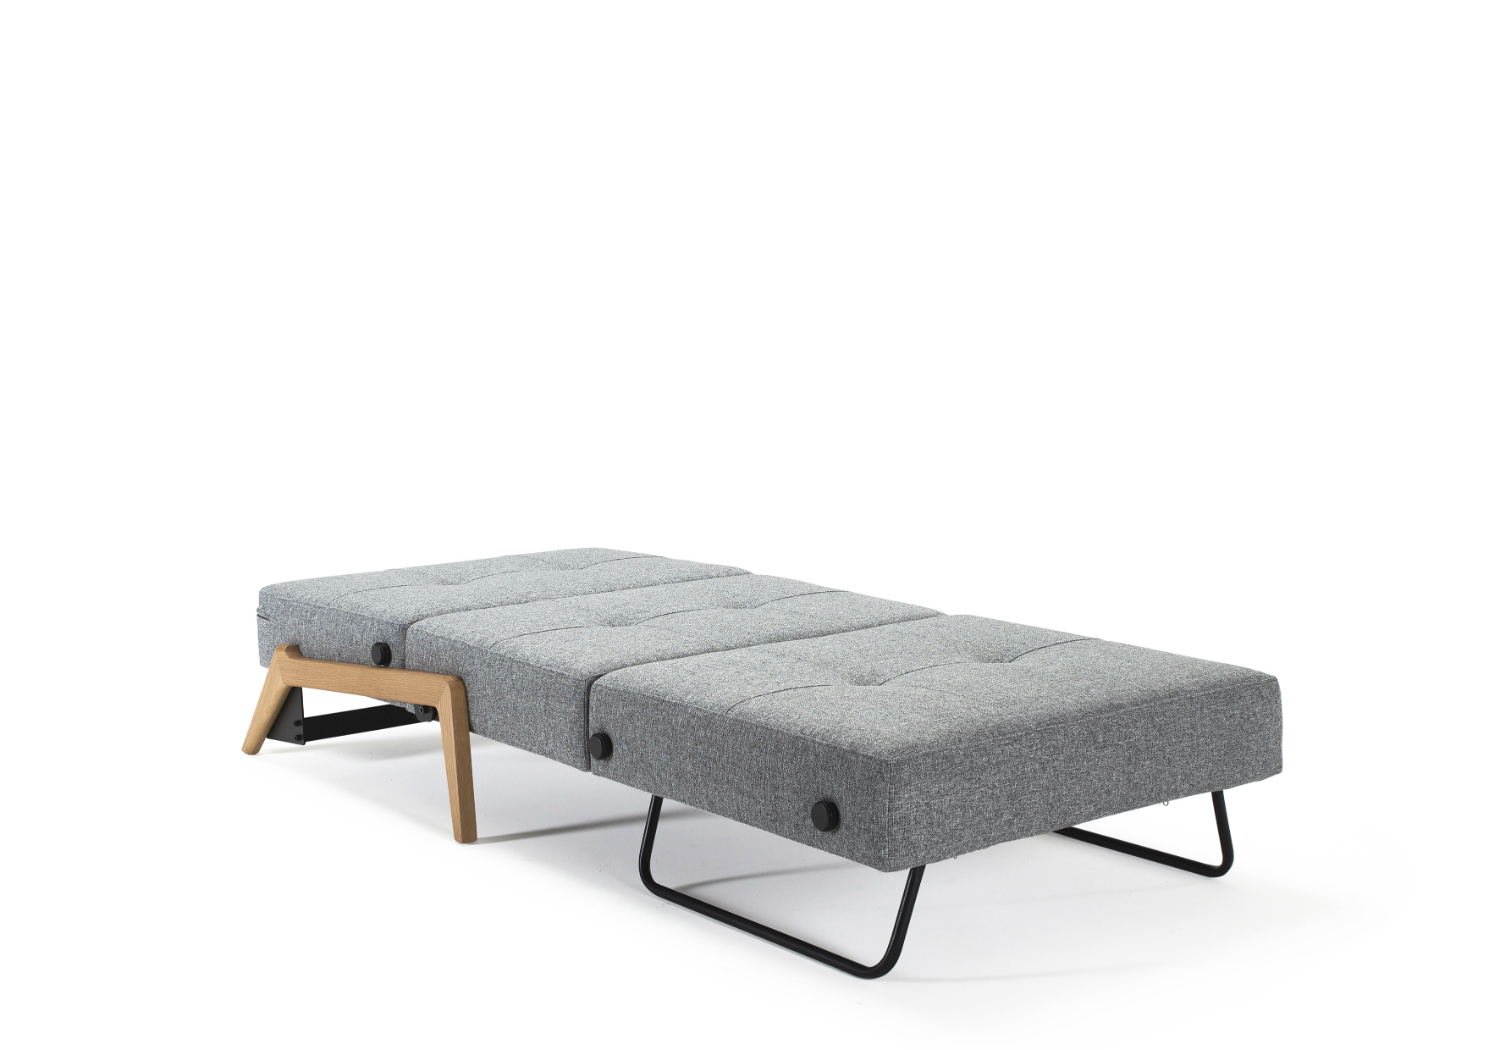 Cubed 90 wood sofa bed single innovation living melbourne for 90 cm sofa bed